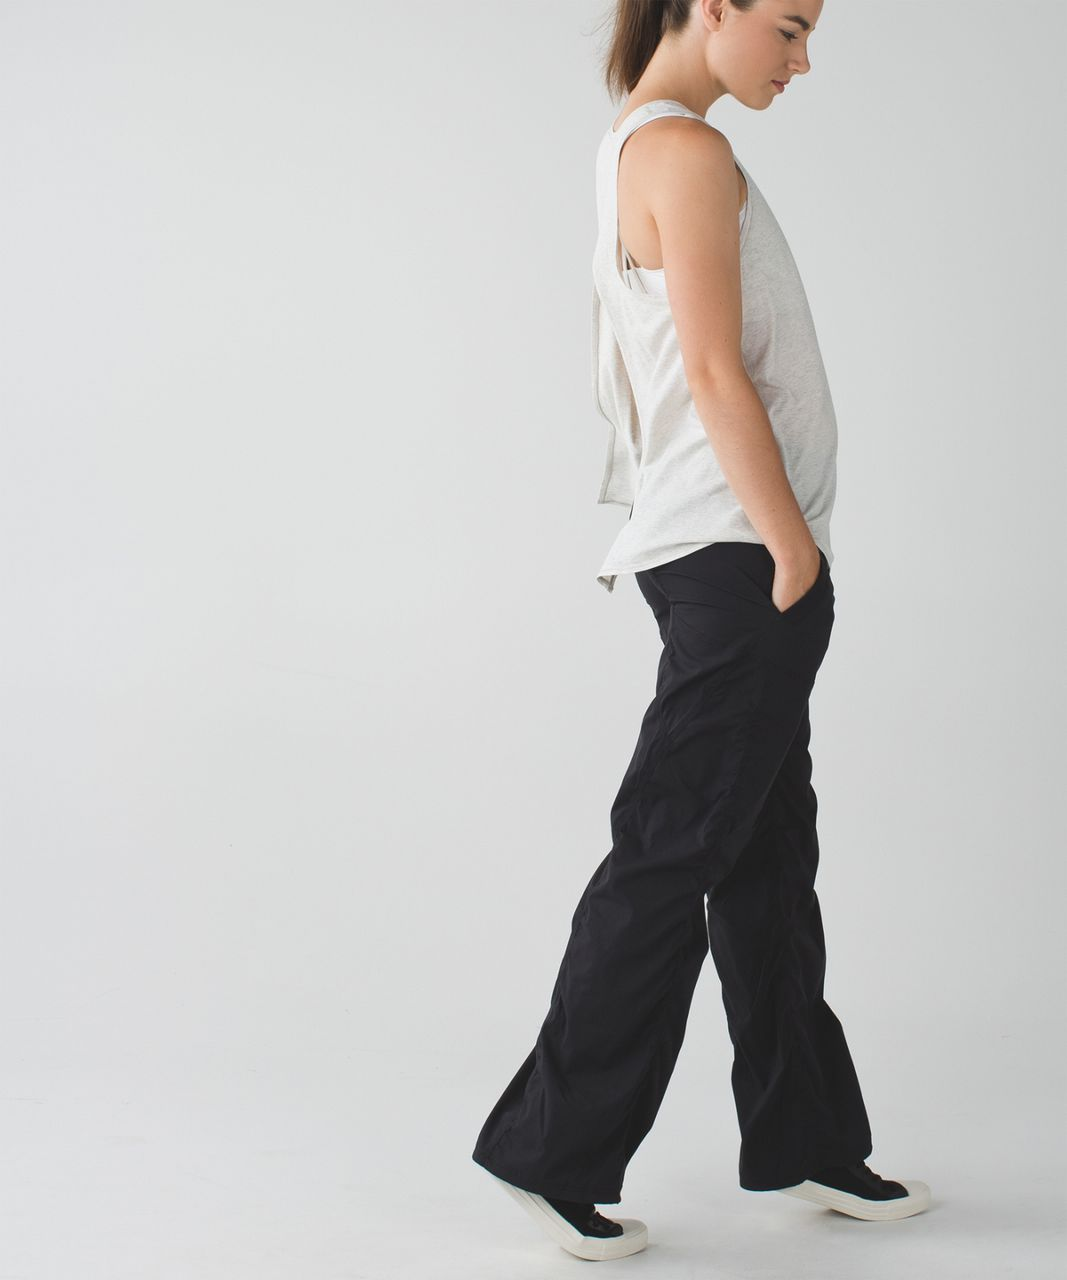 Lululemon Studio Pant II *No Liner (Tall) (First Release) - Black